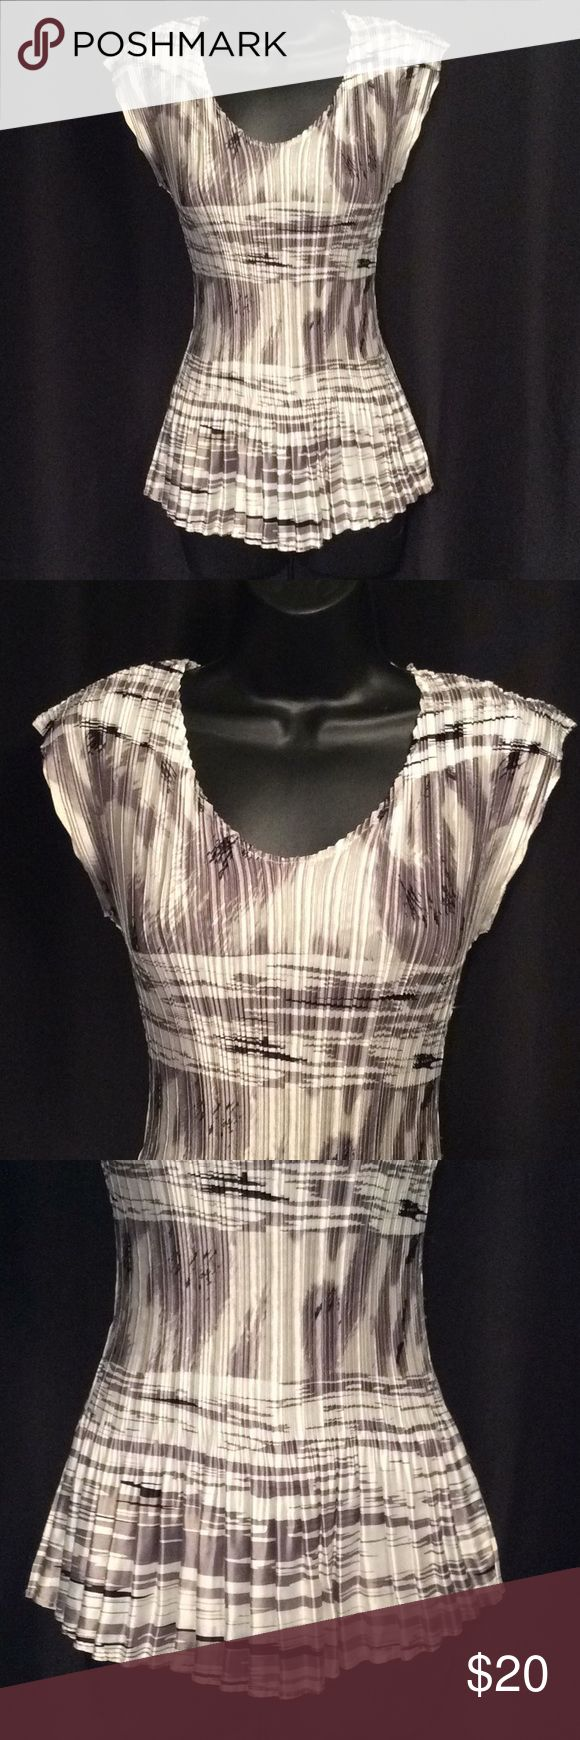 """Sz S Milano Gray Black & Silver Short Sleeve Top Beautiful pleated waistline for slimming look, Soft comfy fabric Armpit to armpit up to 18"""" Length from shoulder to hem 24"""" Waist up to 36"""" Milano Tops"""